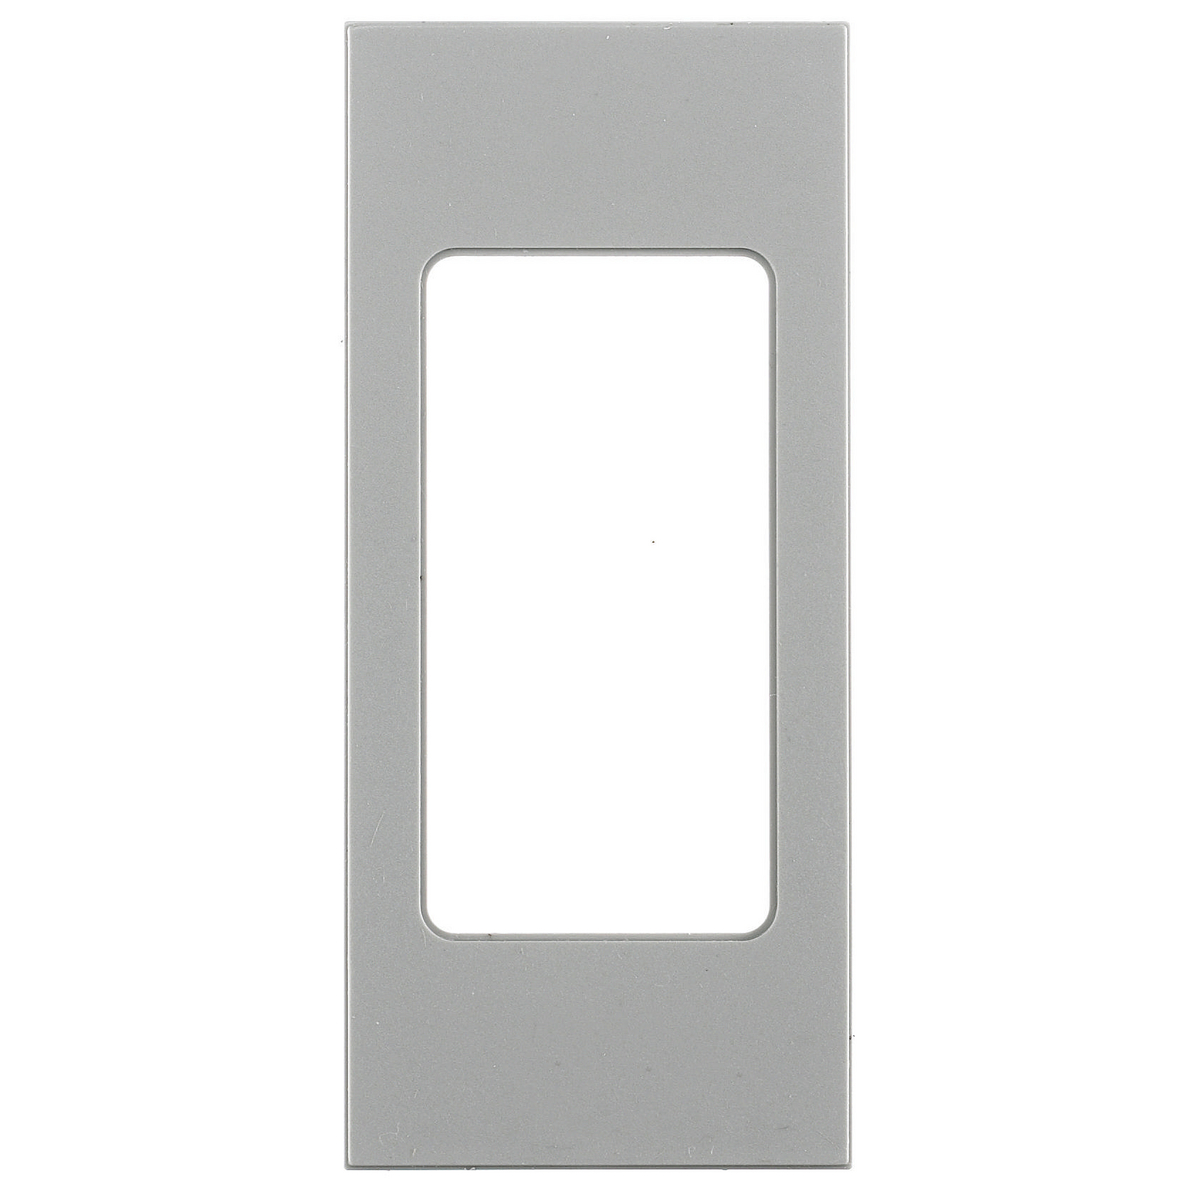 Hubbell HBLDE301GYFACEPLATE, SNAP-IN, GFCI, GY